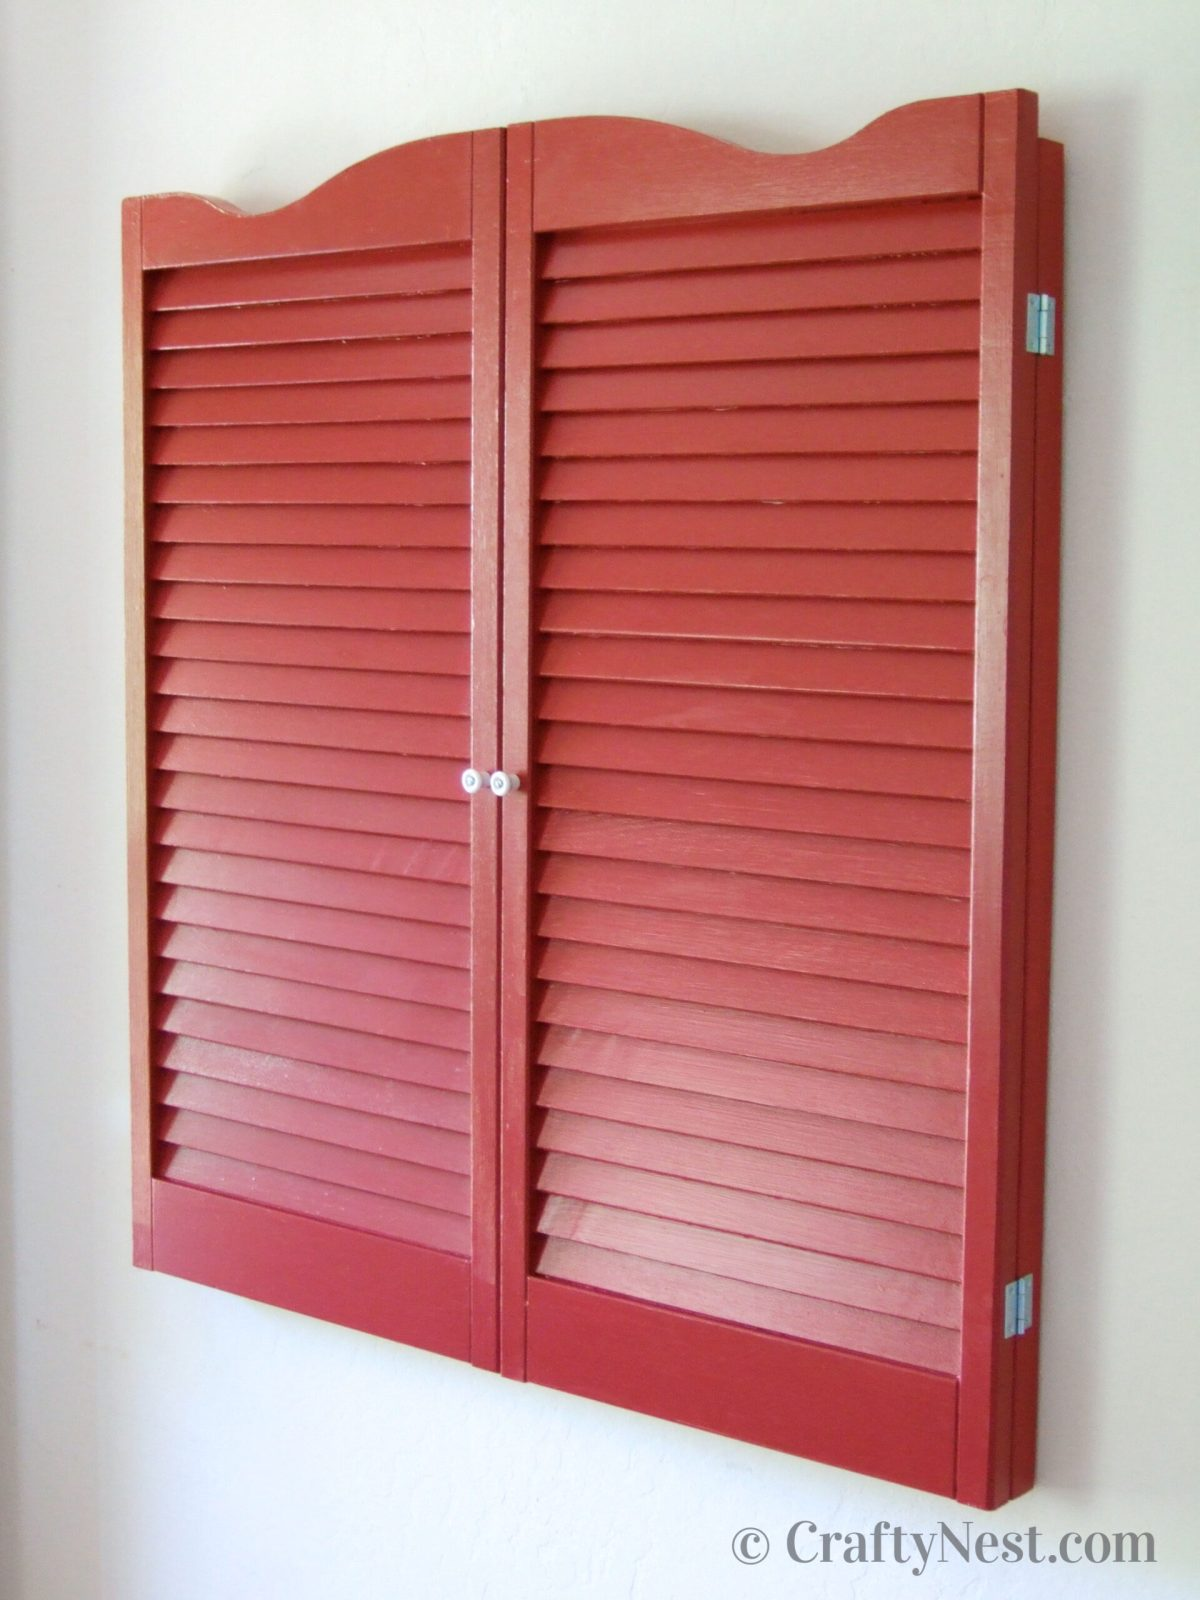 Red shutters covering a bulletin board, photo